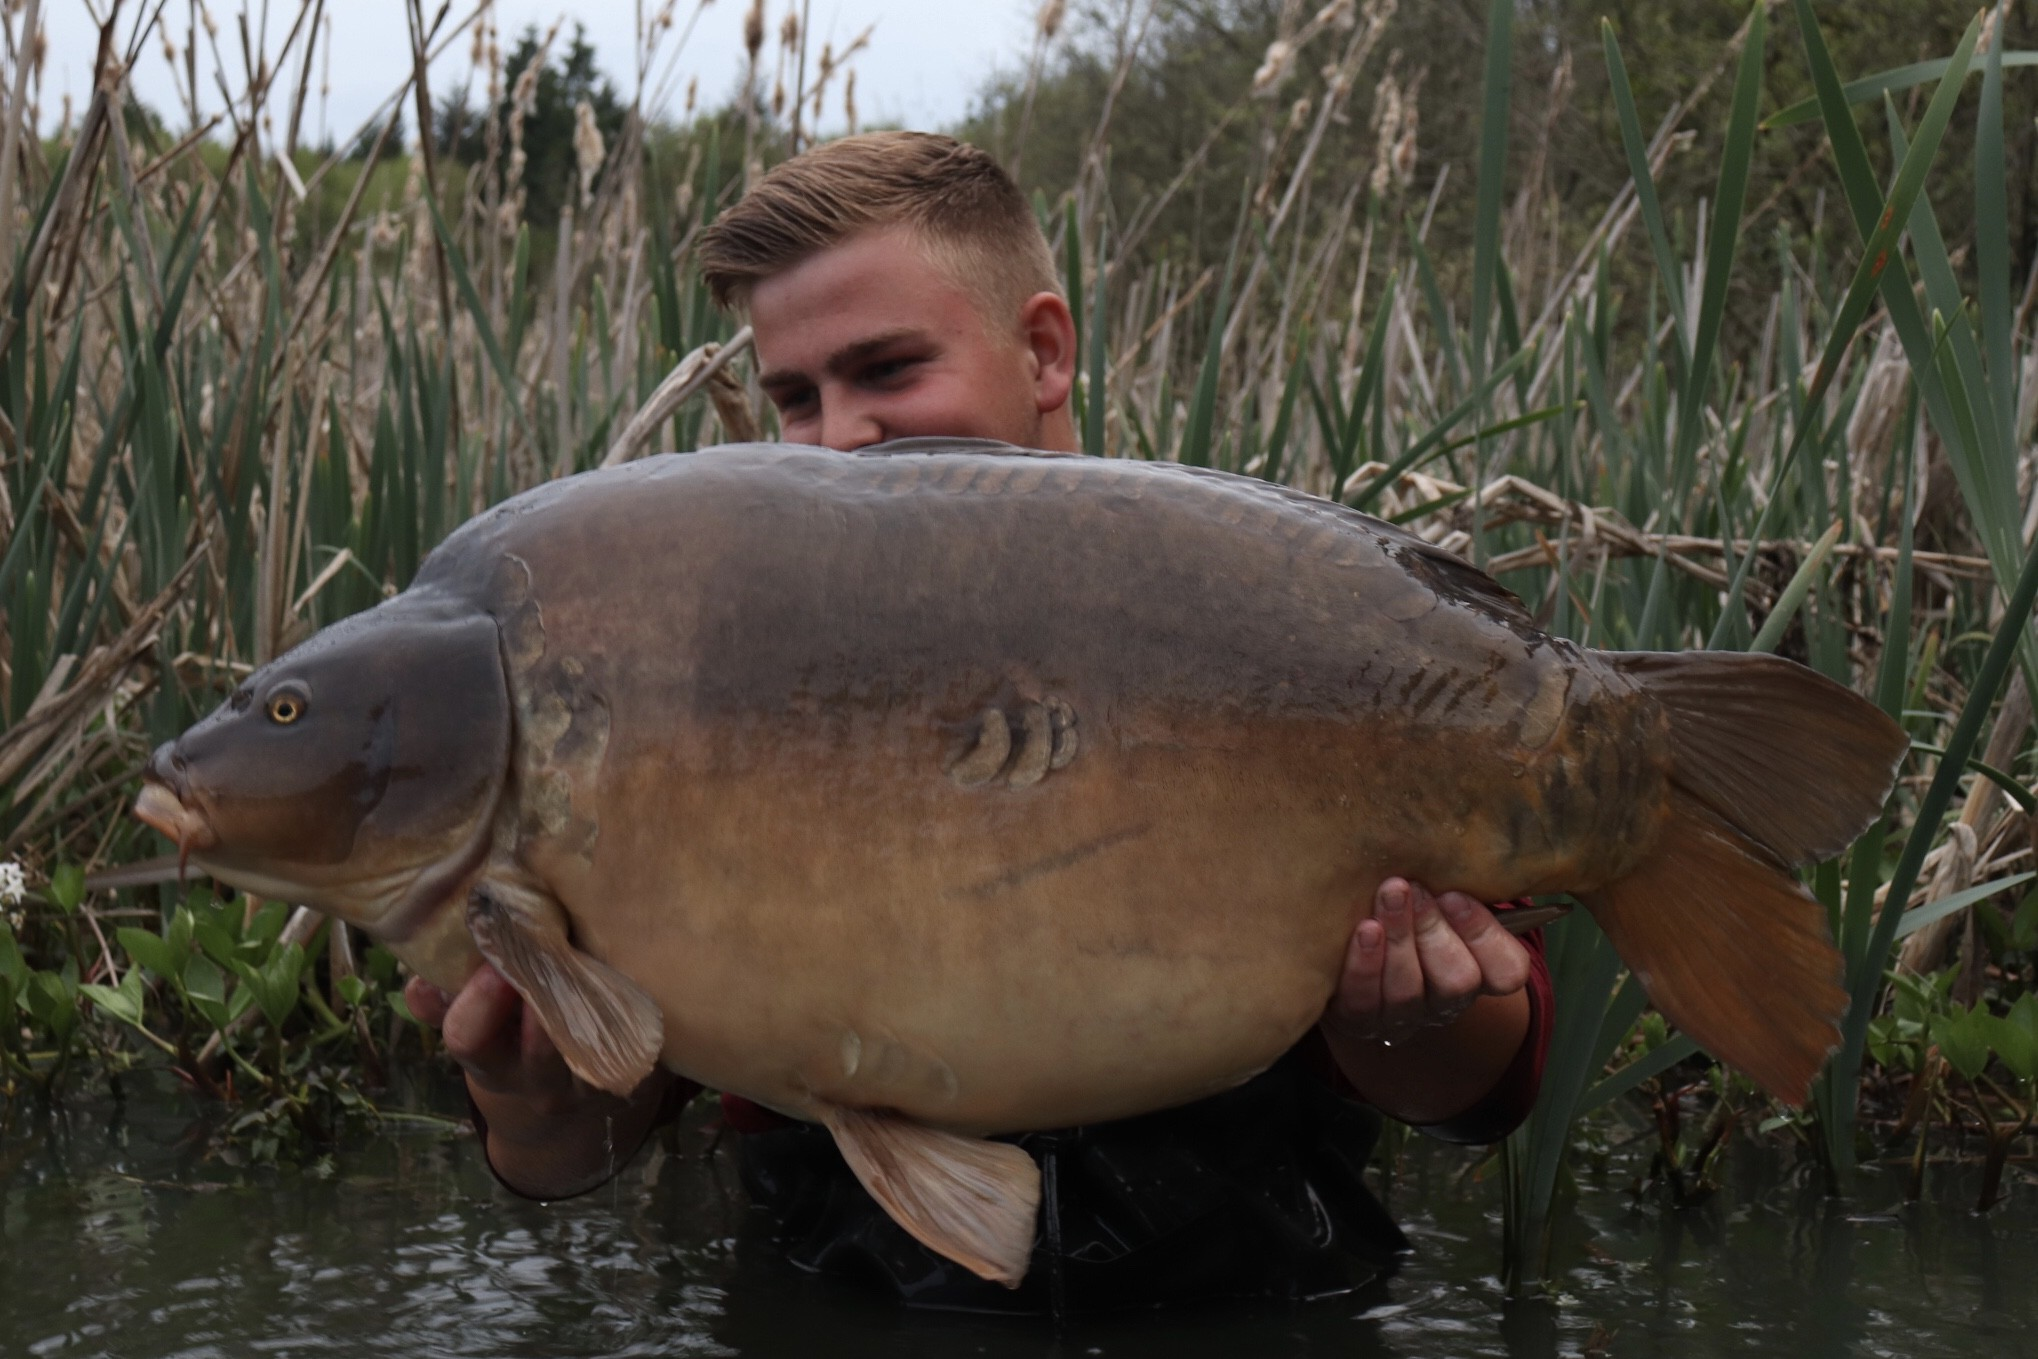 35lb 12oz  caught on